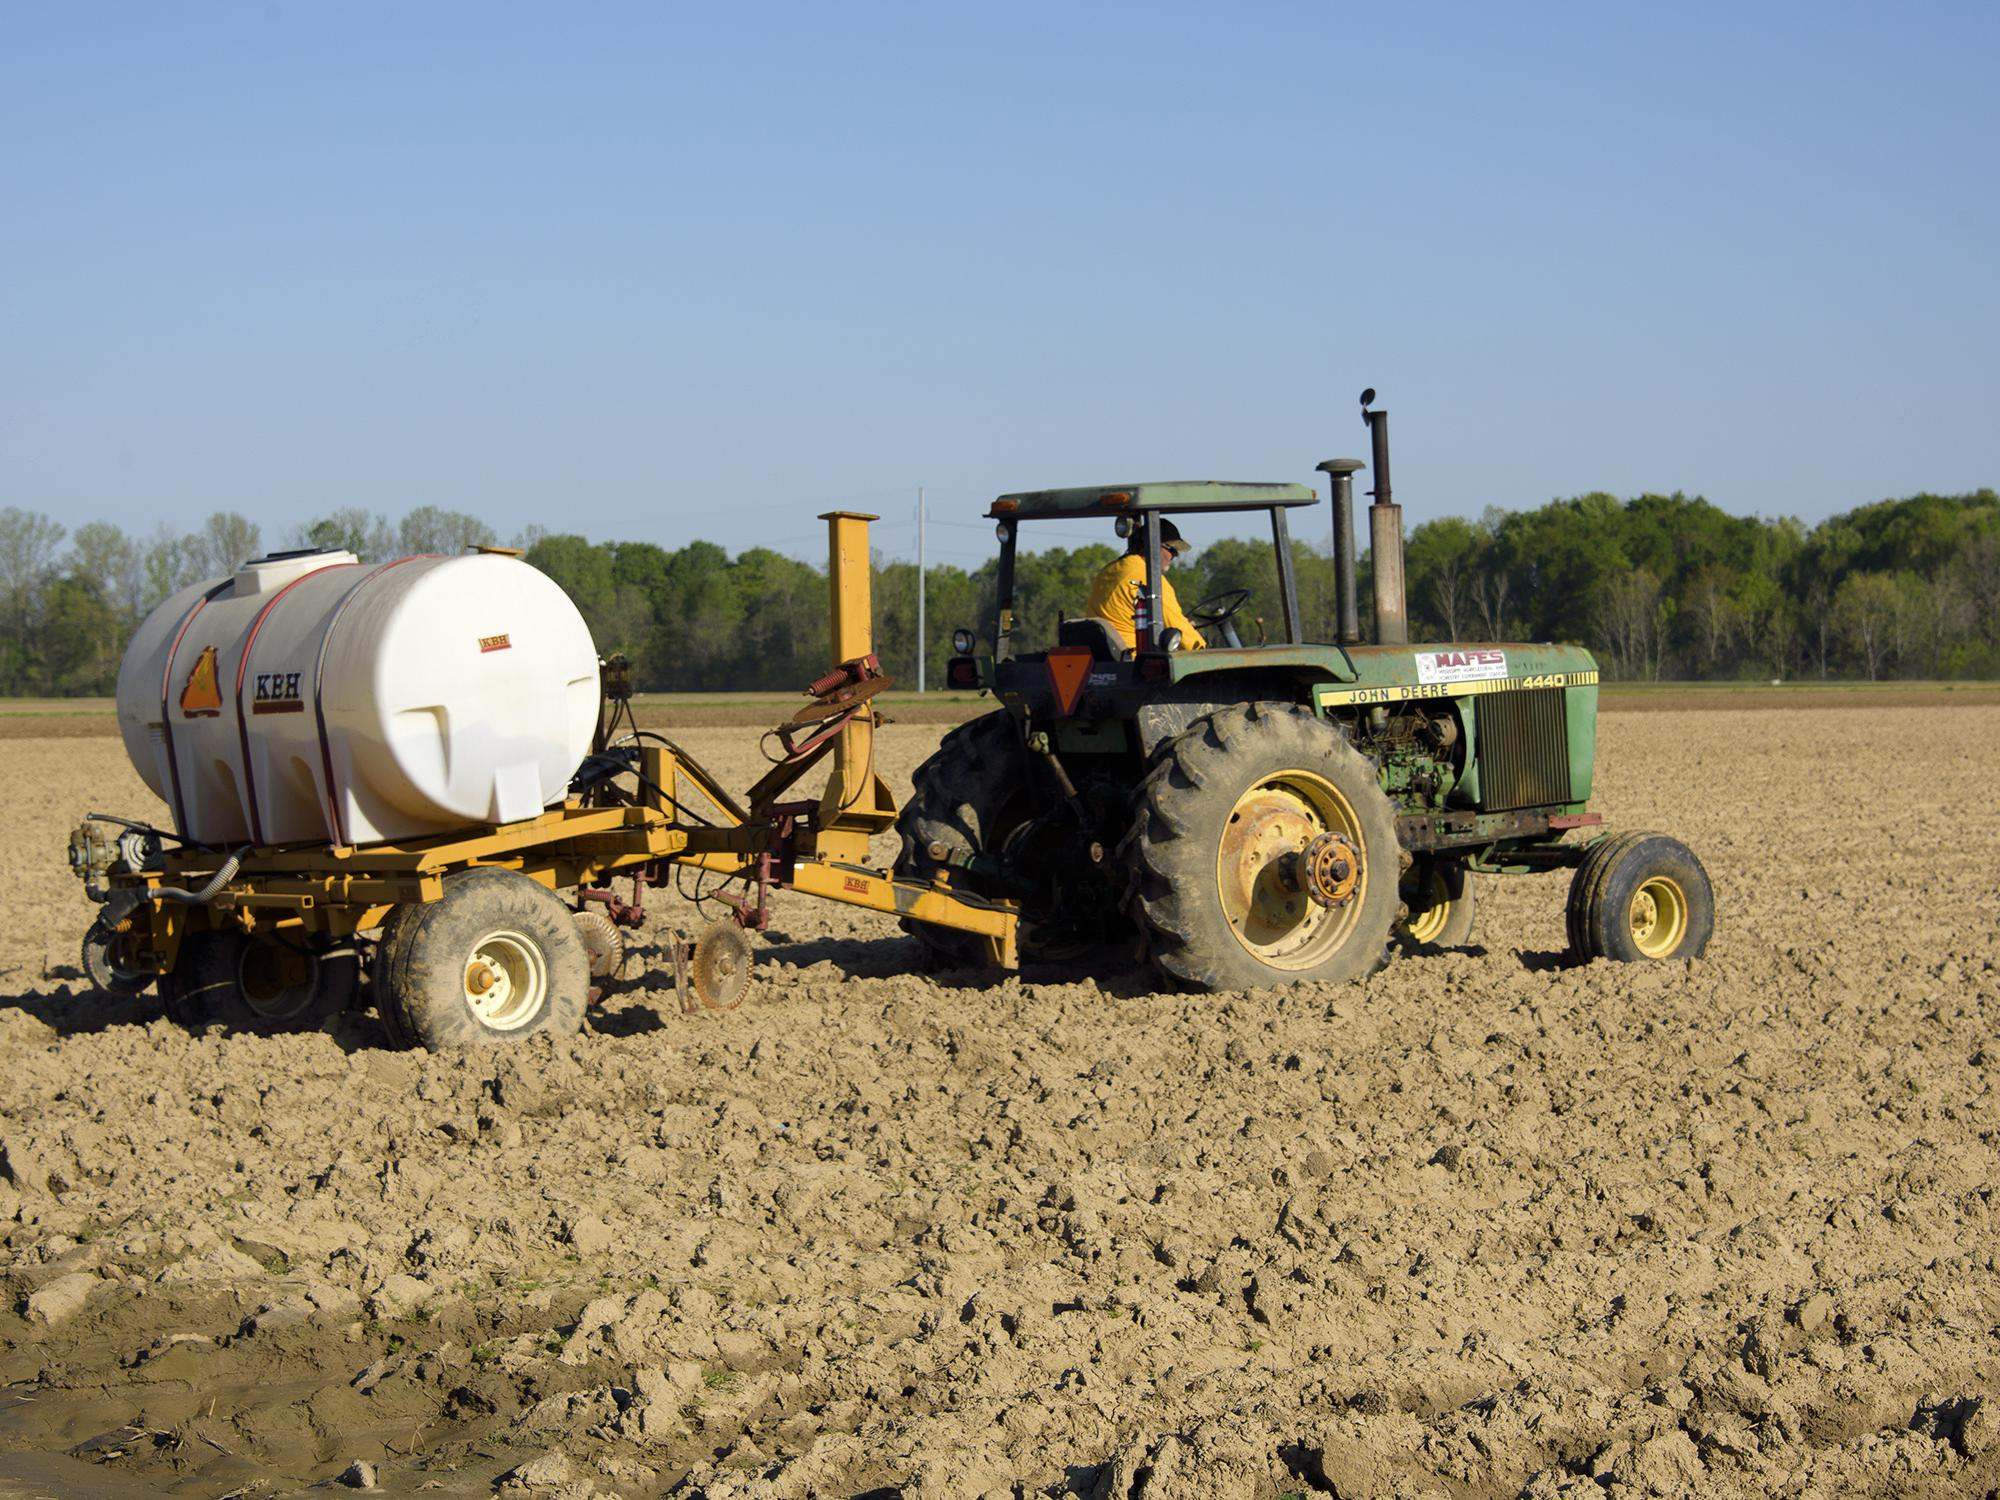 Eddie Stevens, farm supervisor at Mississippi State University's R. R. Foil Plant Science Research Center in Starkville, was applying a liquid fertilizer to a corn field on April 5, 2016. Correct application of nutrients is a key part of environmental stewardship and efficient farm management. (Photo by MSU Extension Service/Kevin Hudson)